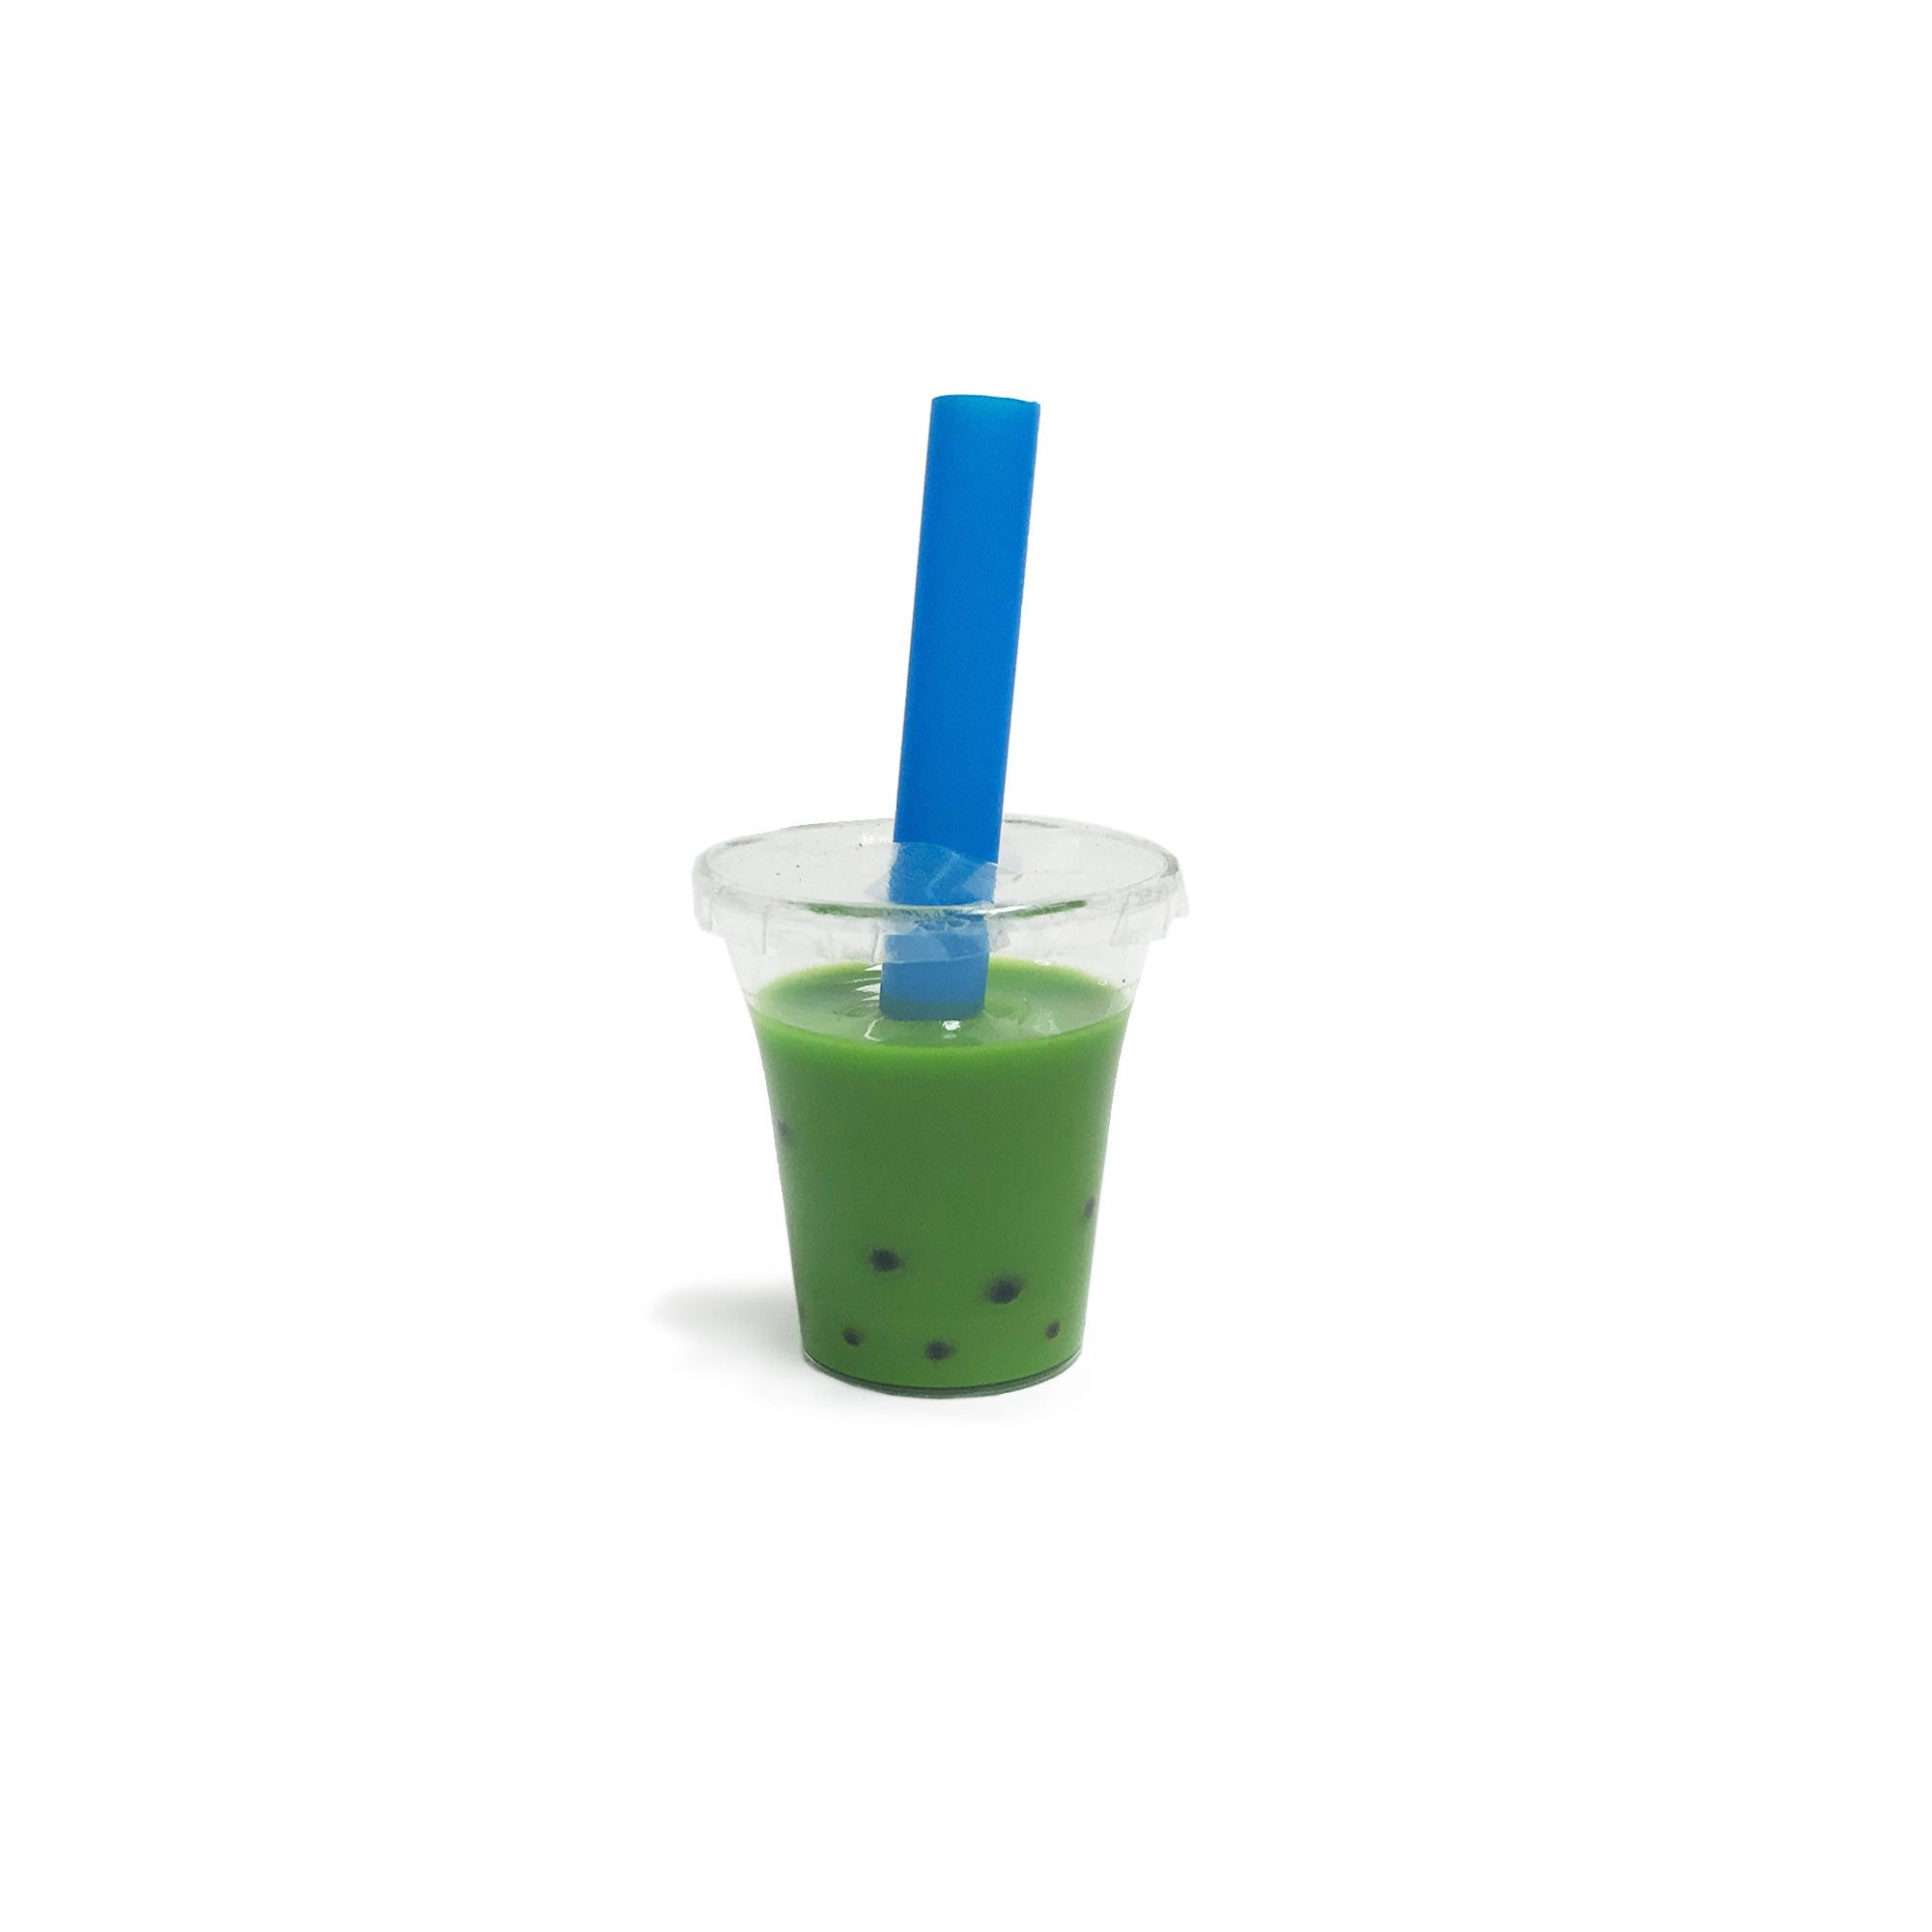 Matcha Green Tea Boba Cup for Resin Boba Bot